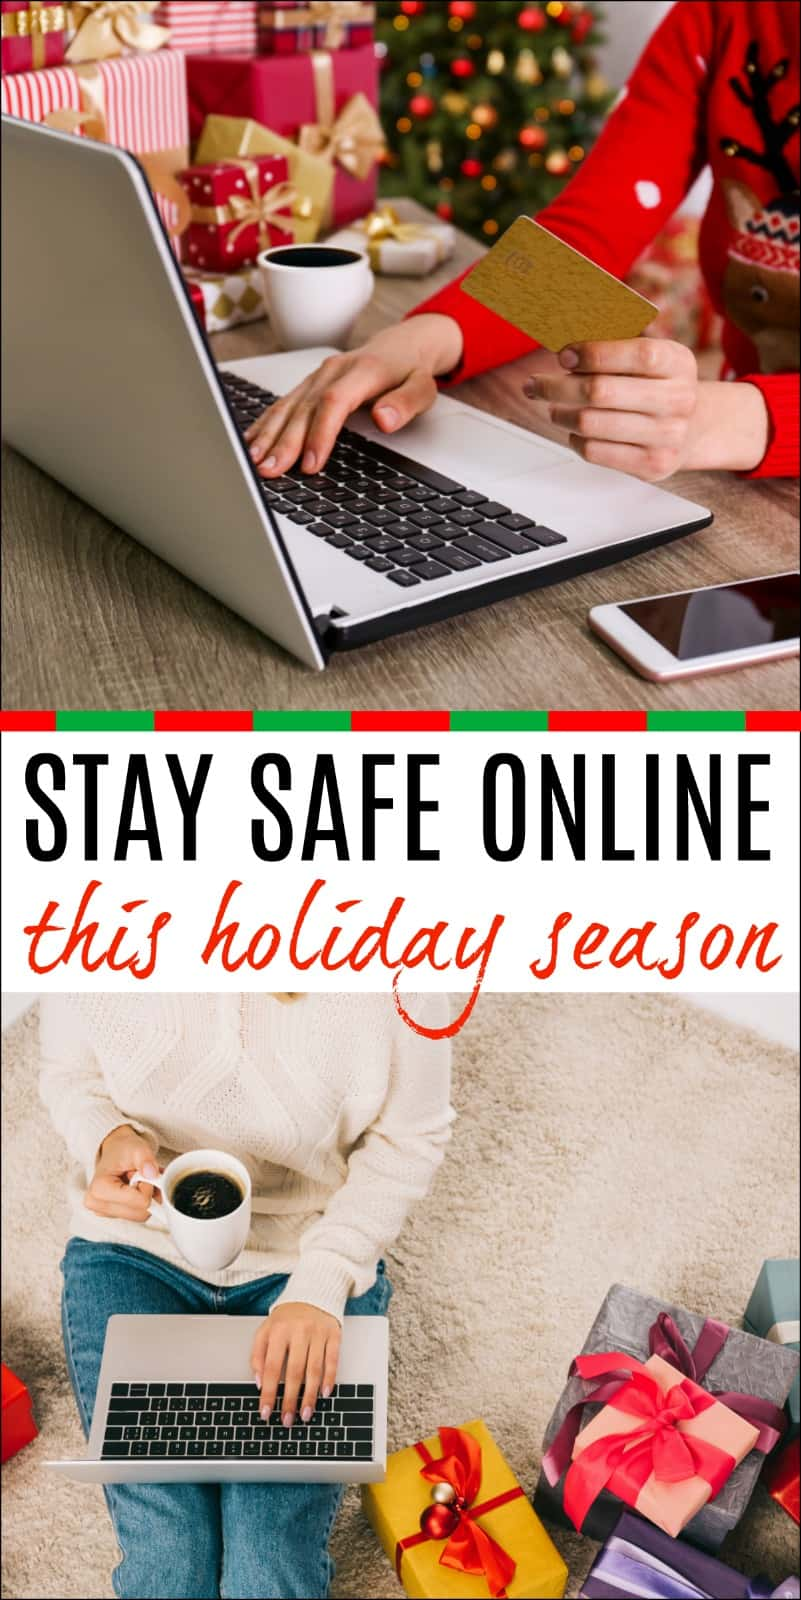 This time of year many of us are doing holiday shopping online. Learn how to Stay Safe Online This Holiday Season with these easy tips. #sponsored #GoogleSecurityCheckup #Google #Security @Google